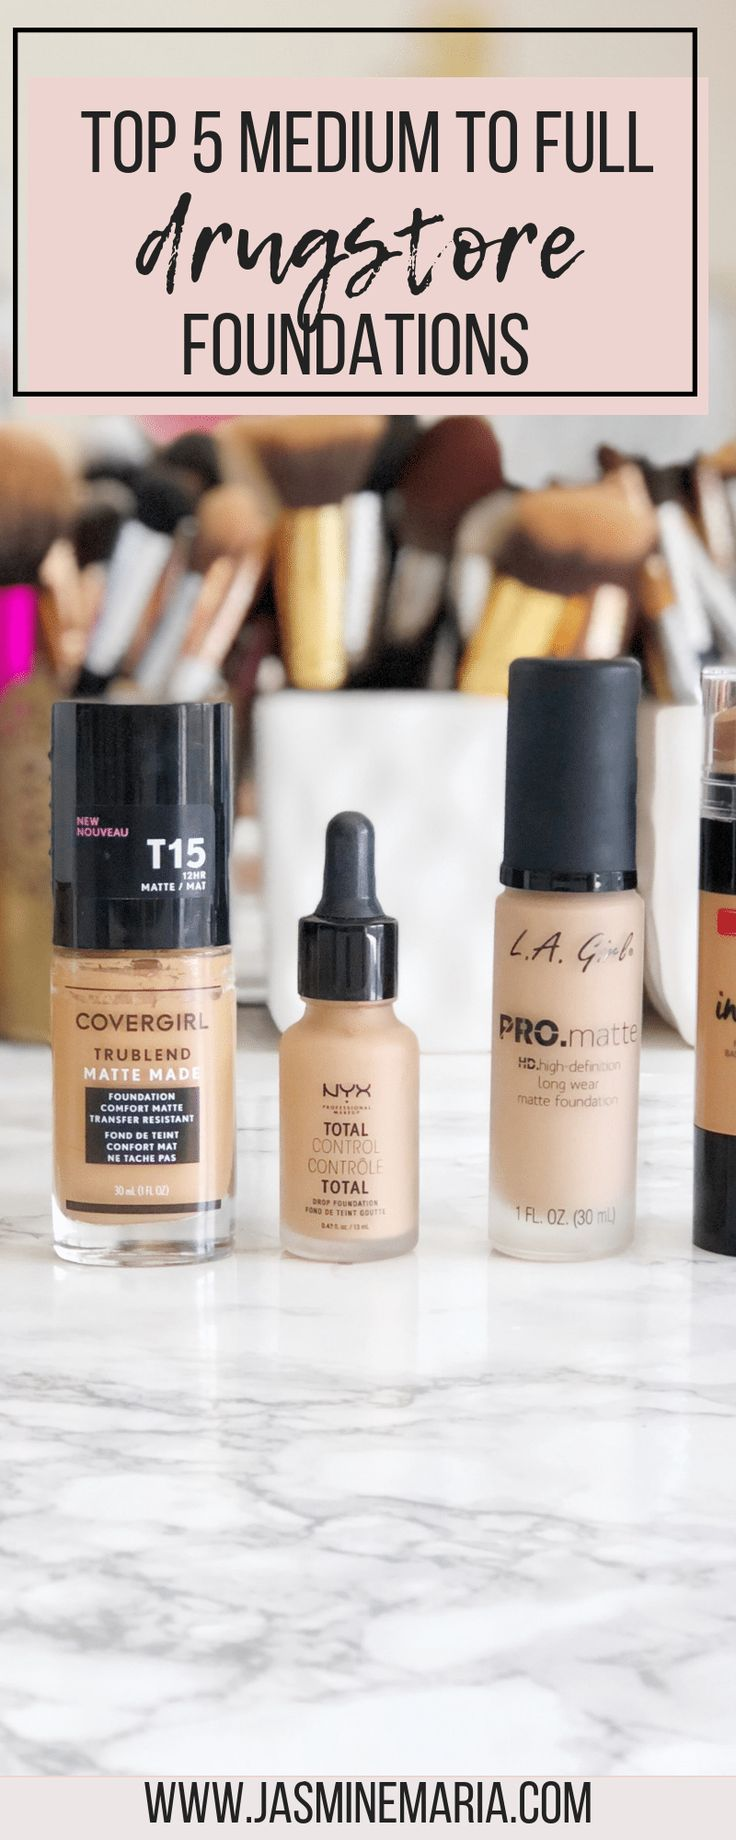 Top 5 Medium to Full Coverage Drugstore Foundations